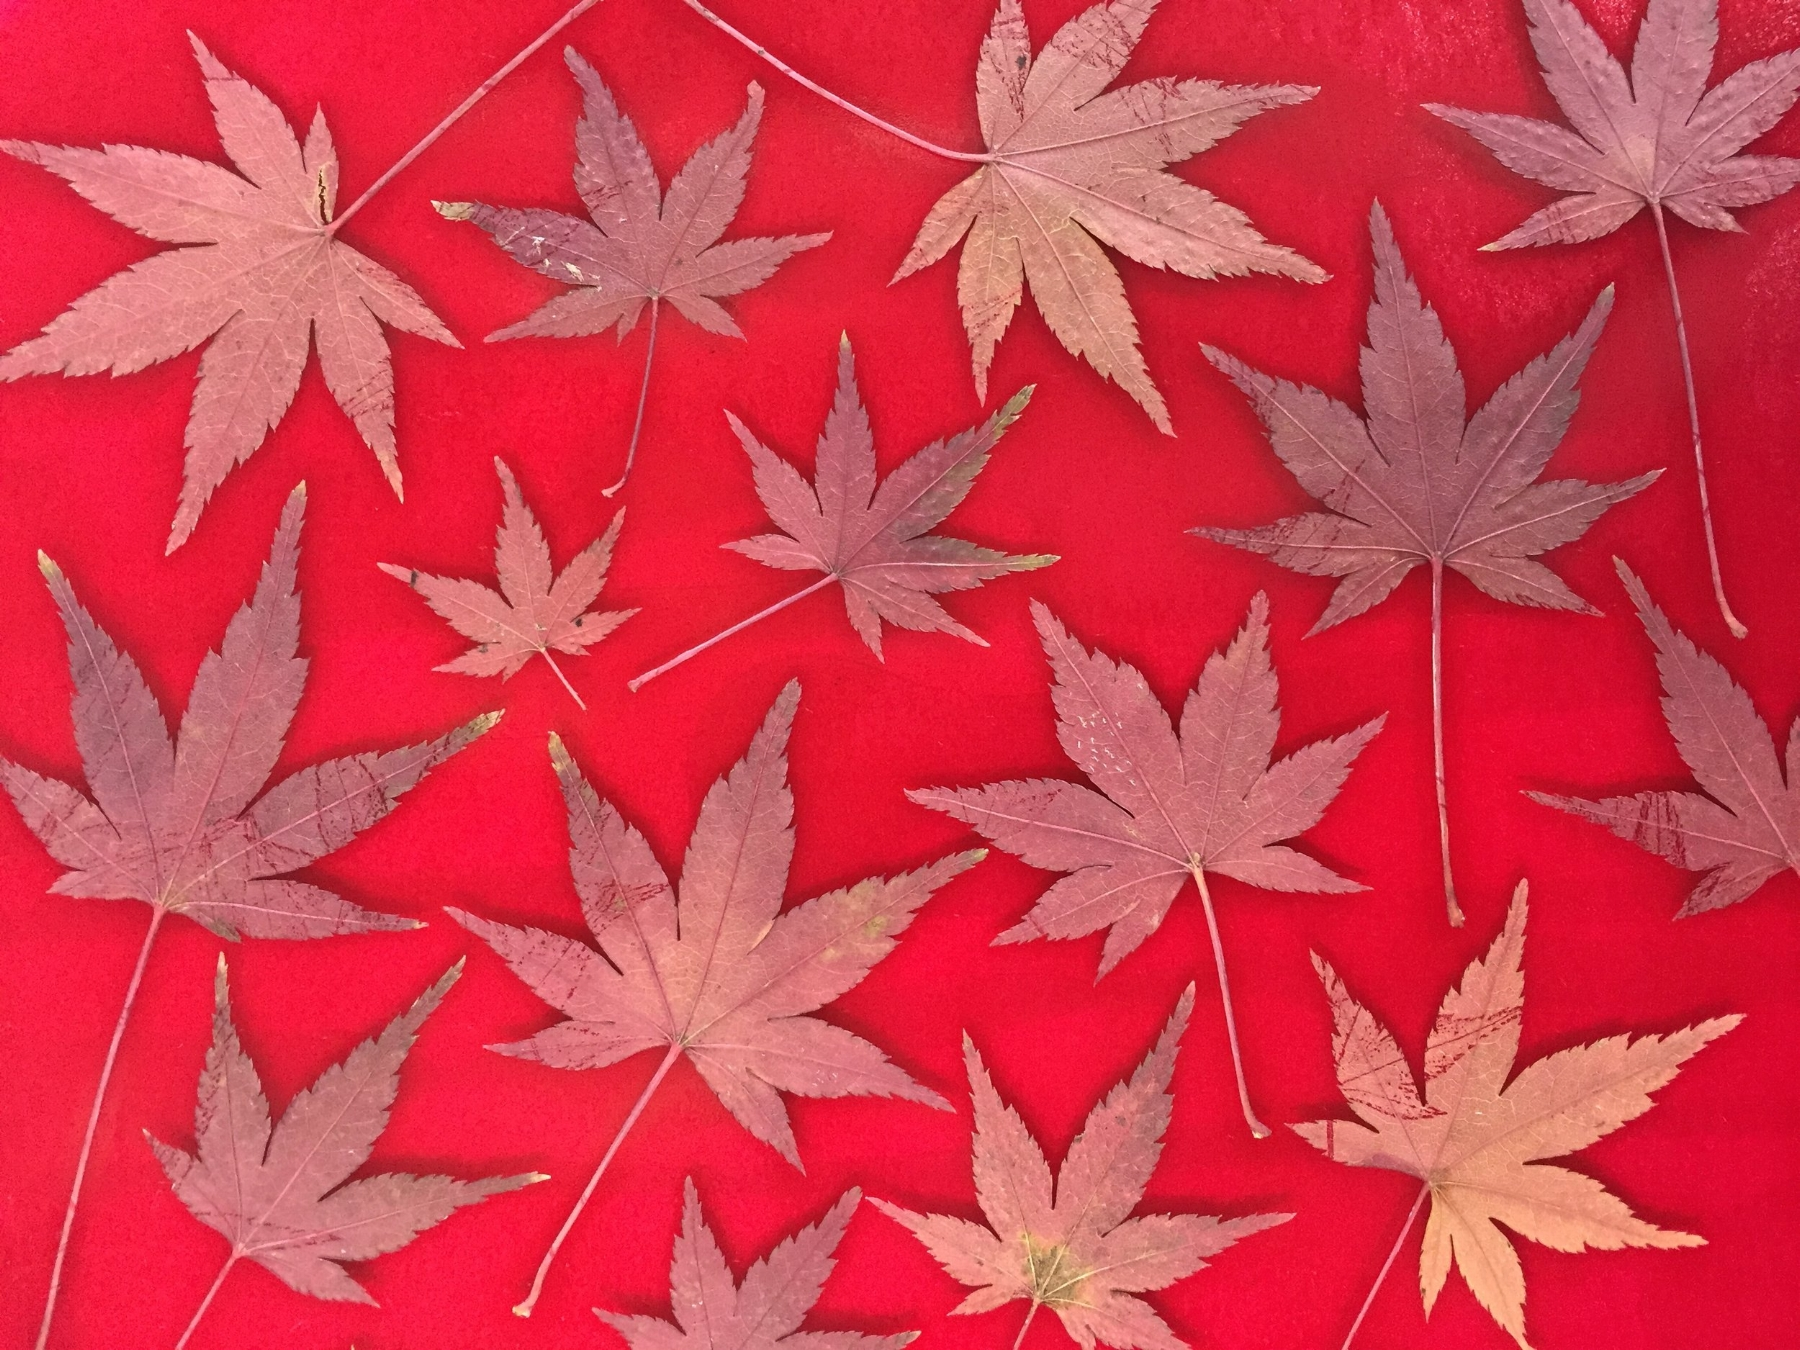 After rolling out the ink (which looks brighter & redder here than it prints), I placed the leaves onto the ink plate. Next, I placed a piece of thin copy paper over the leaves and carefully rubbed over them with my hand, transferring the ink to the leaves.